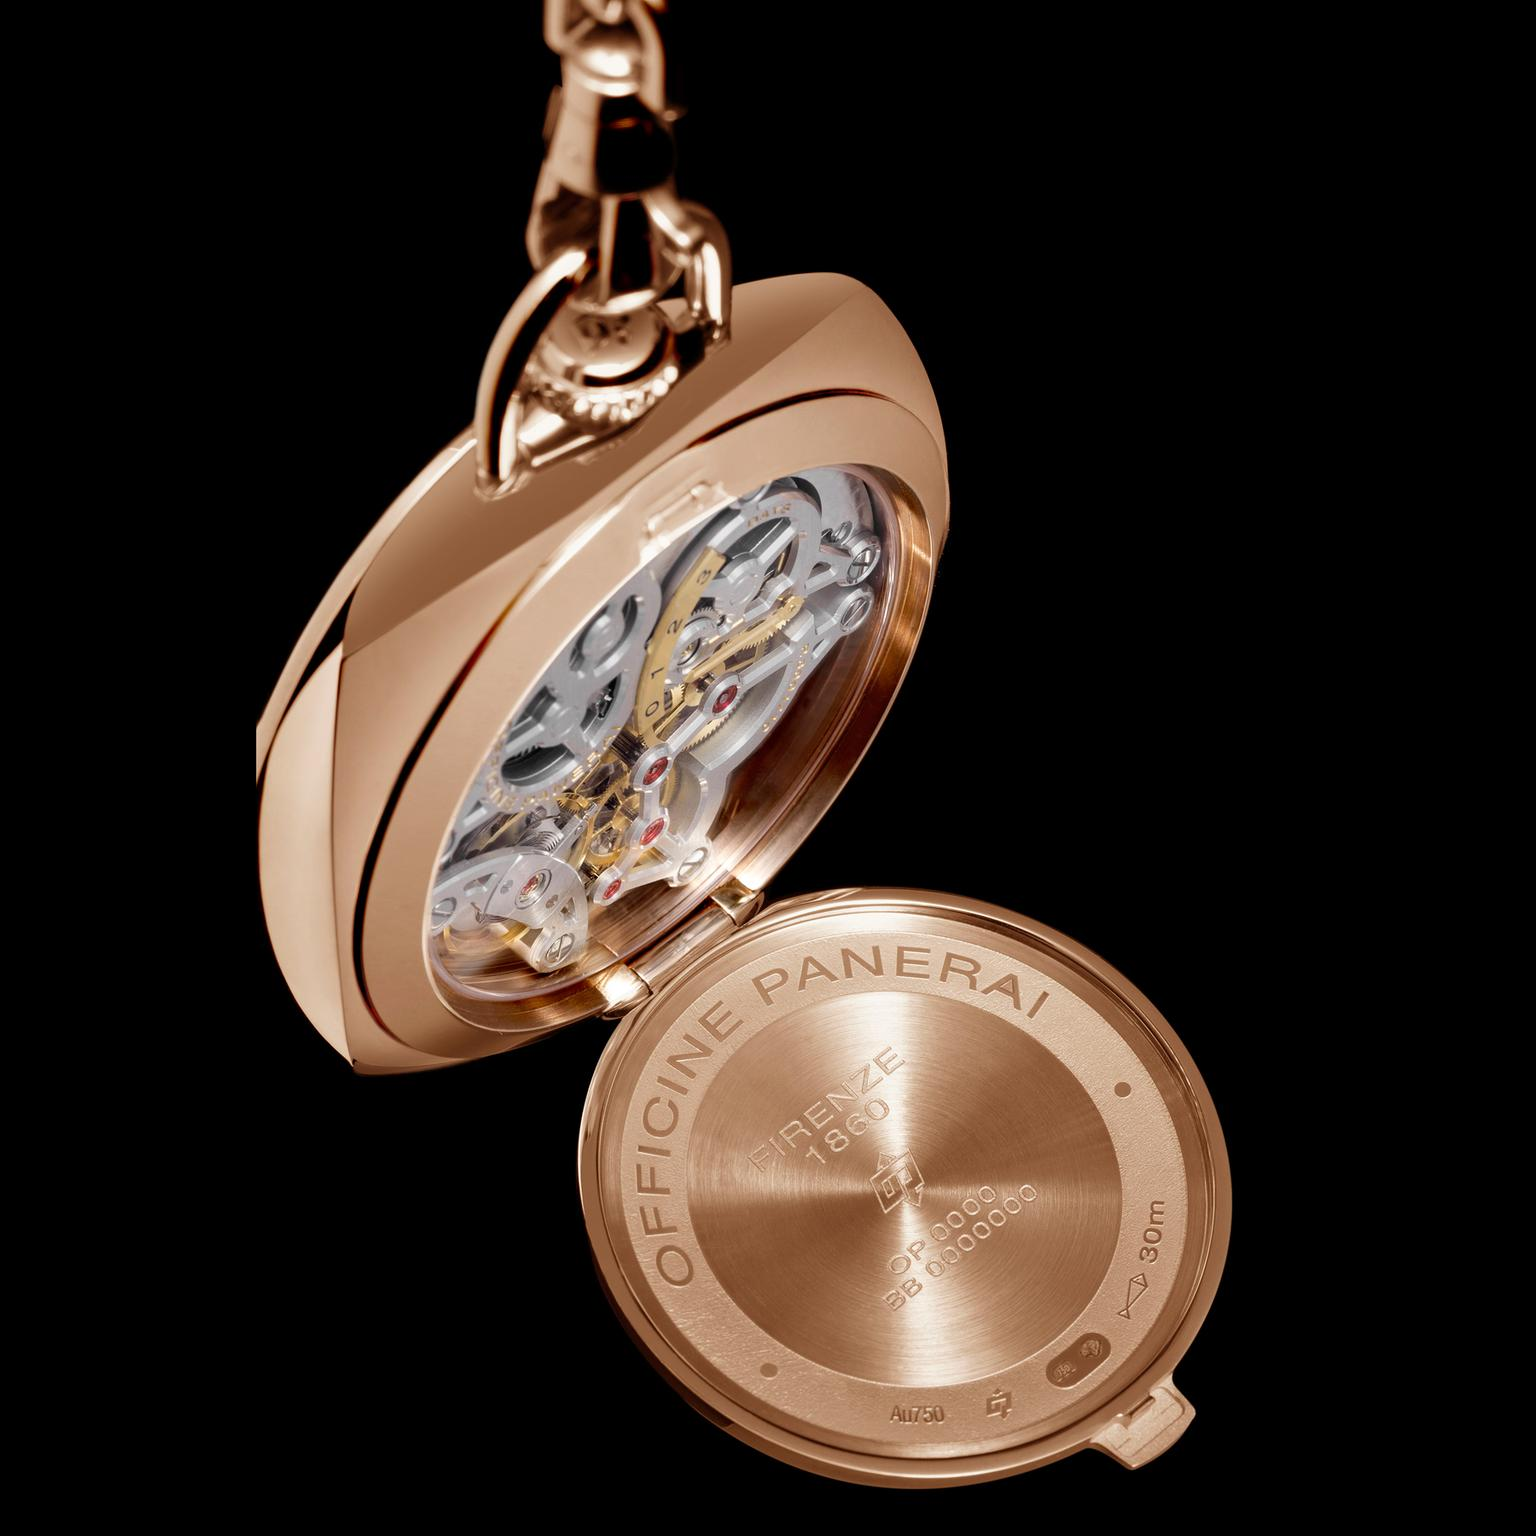 Panerai Pam447 pocket watch open caseback